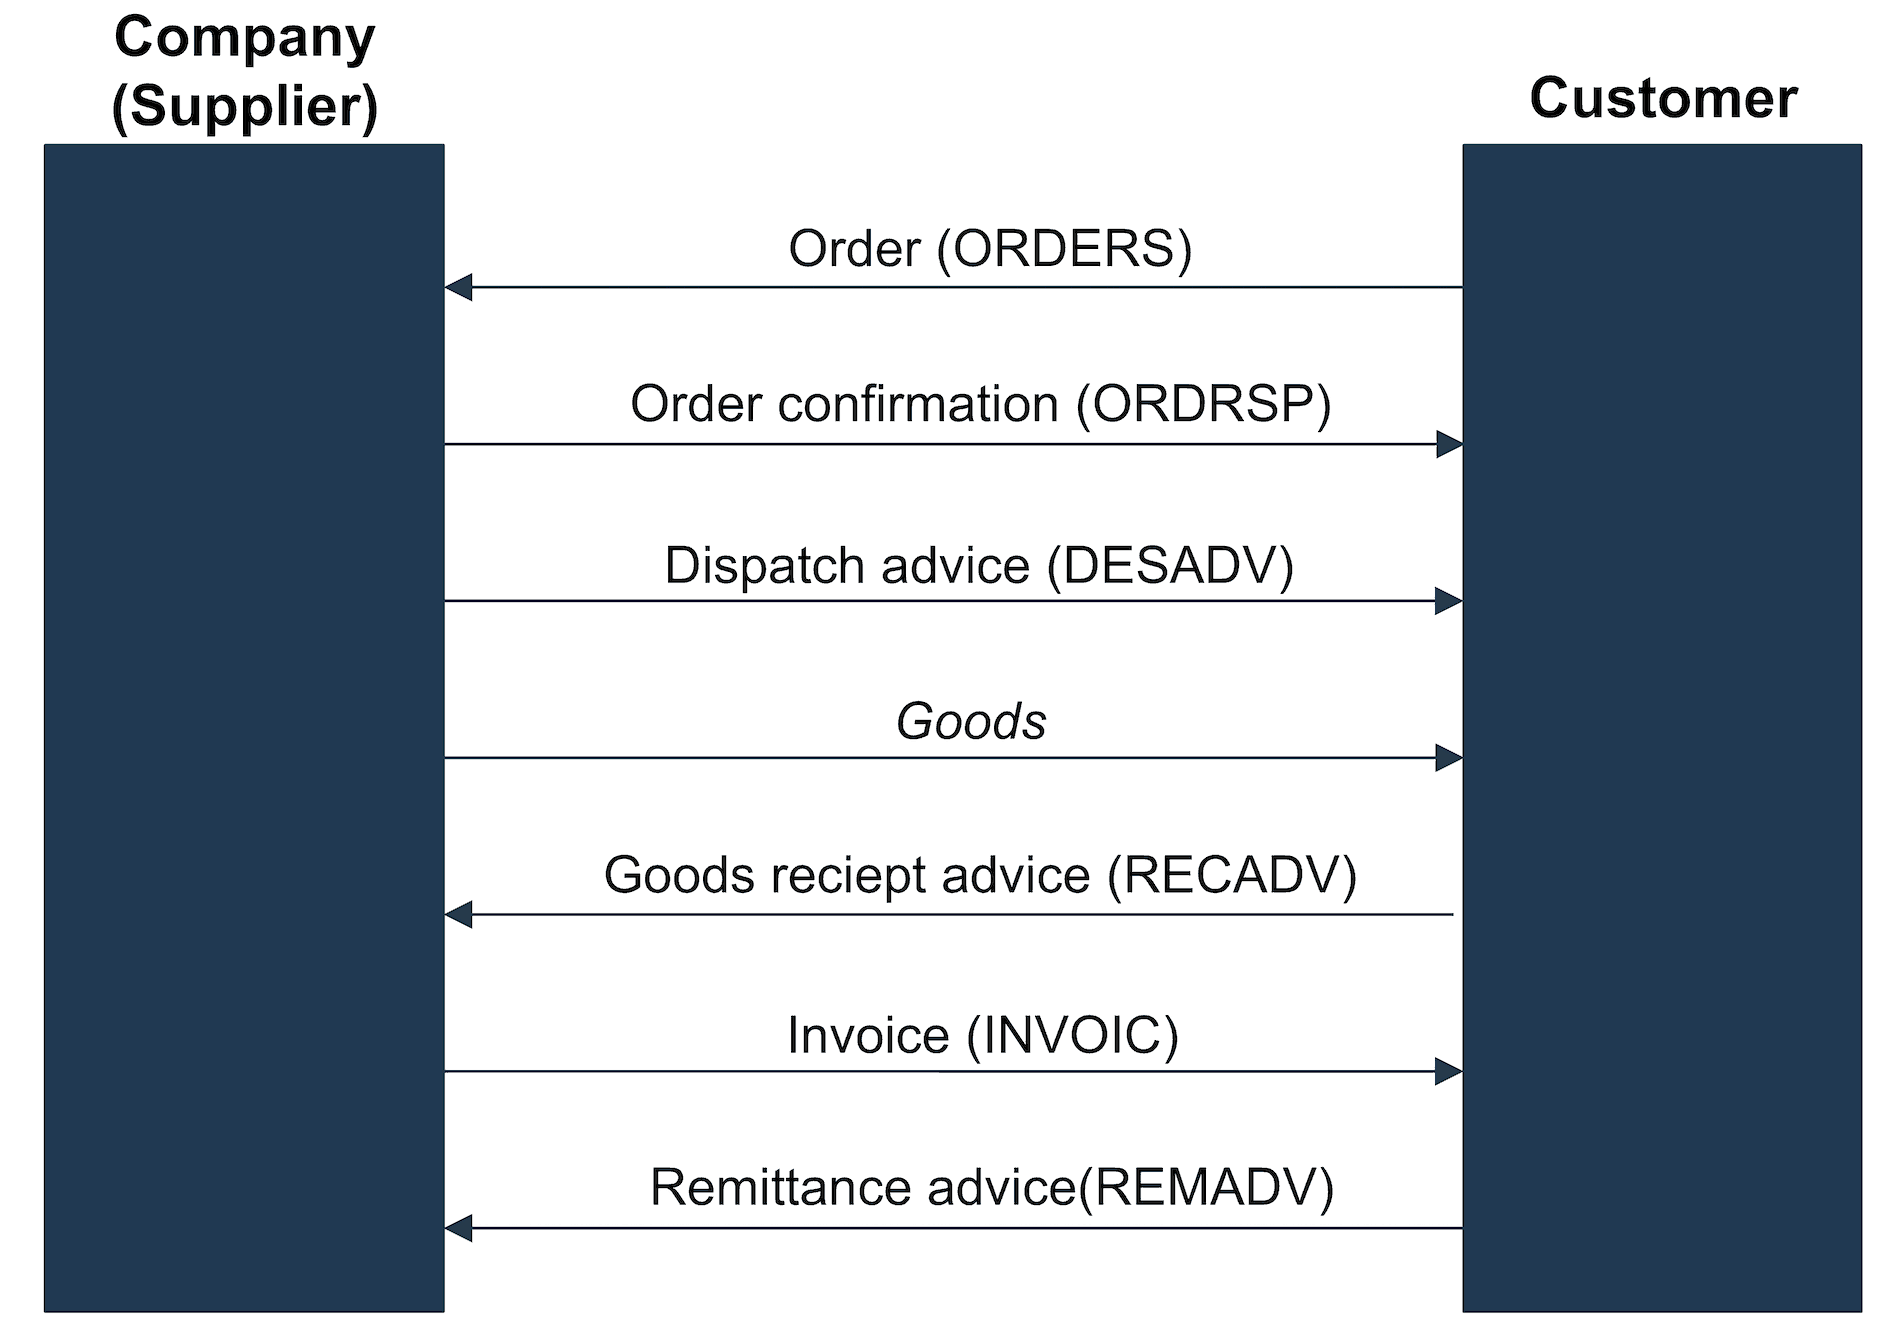 Example of an Order-to-Cash process